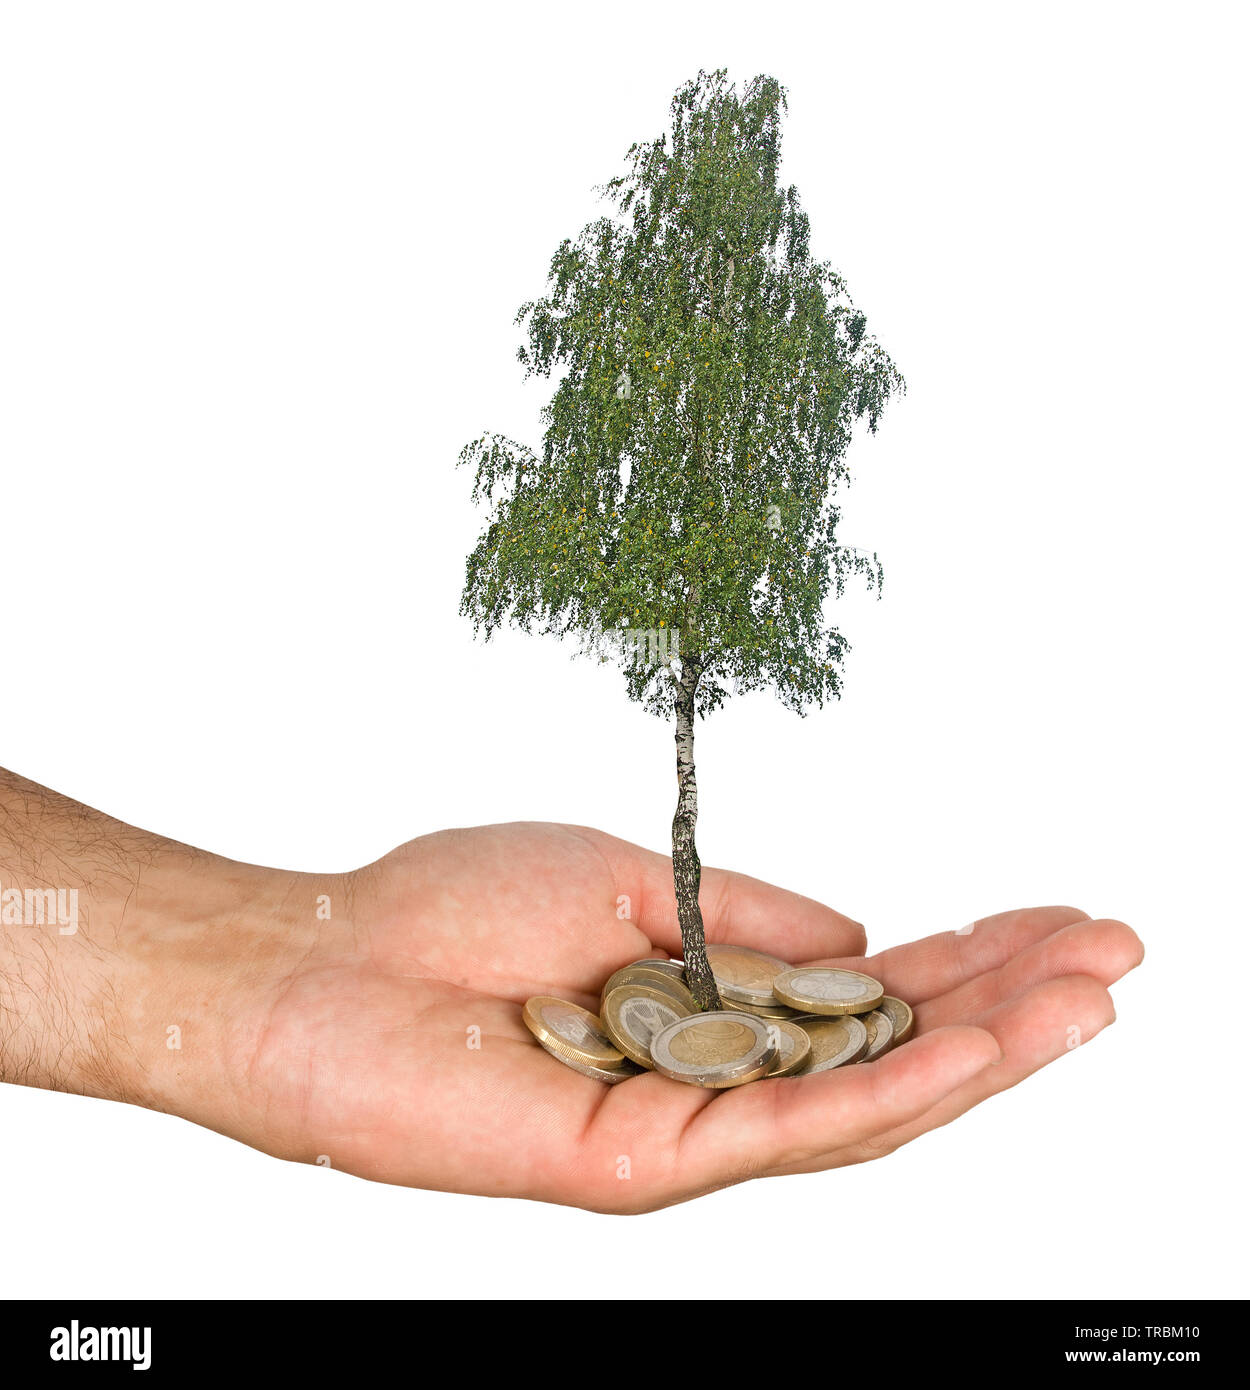 Palm with a tree growing from pile of coins - Stock Image